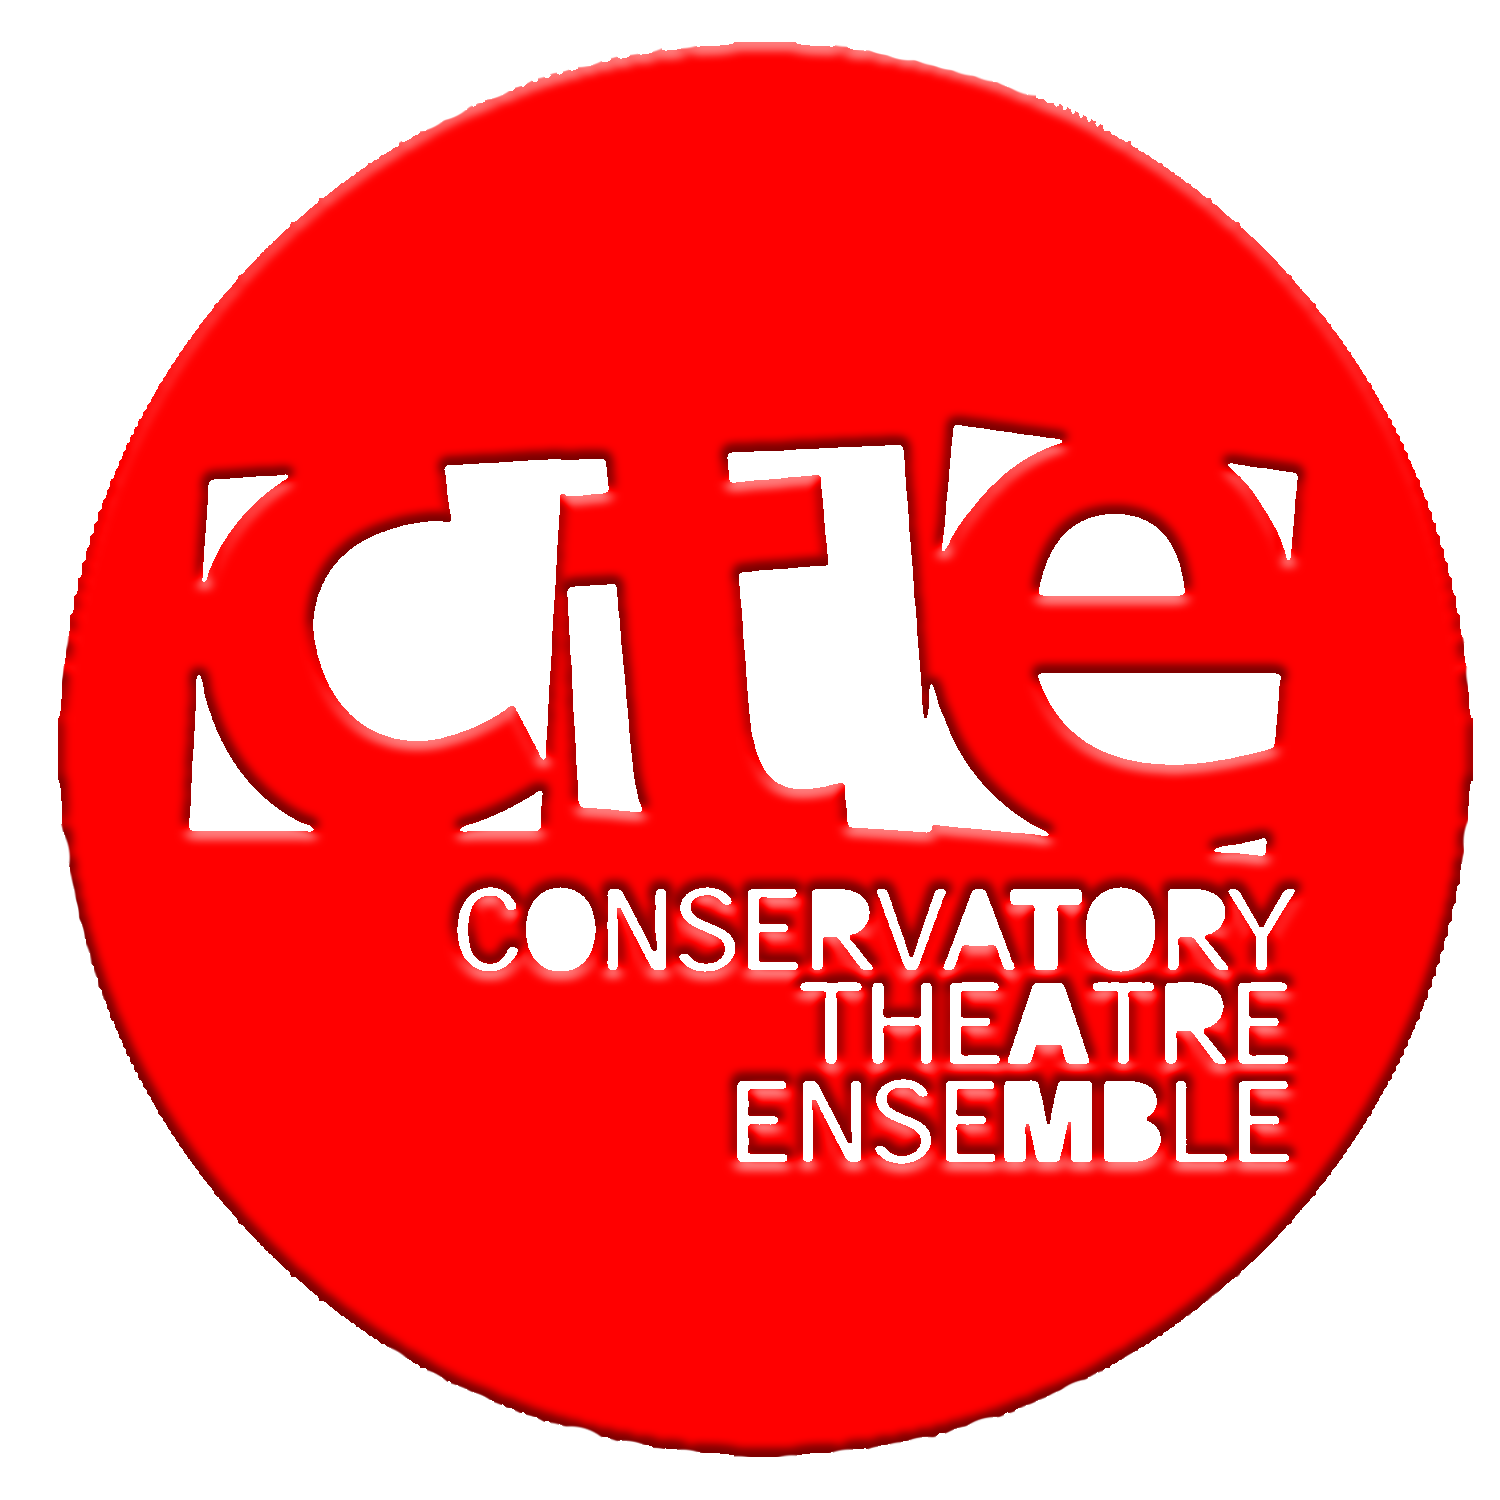 Conservatory Theatre Ensemble